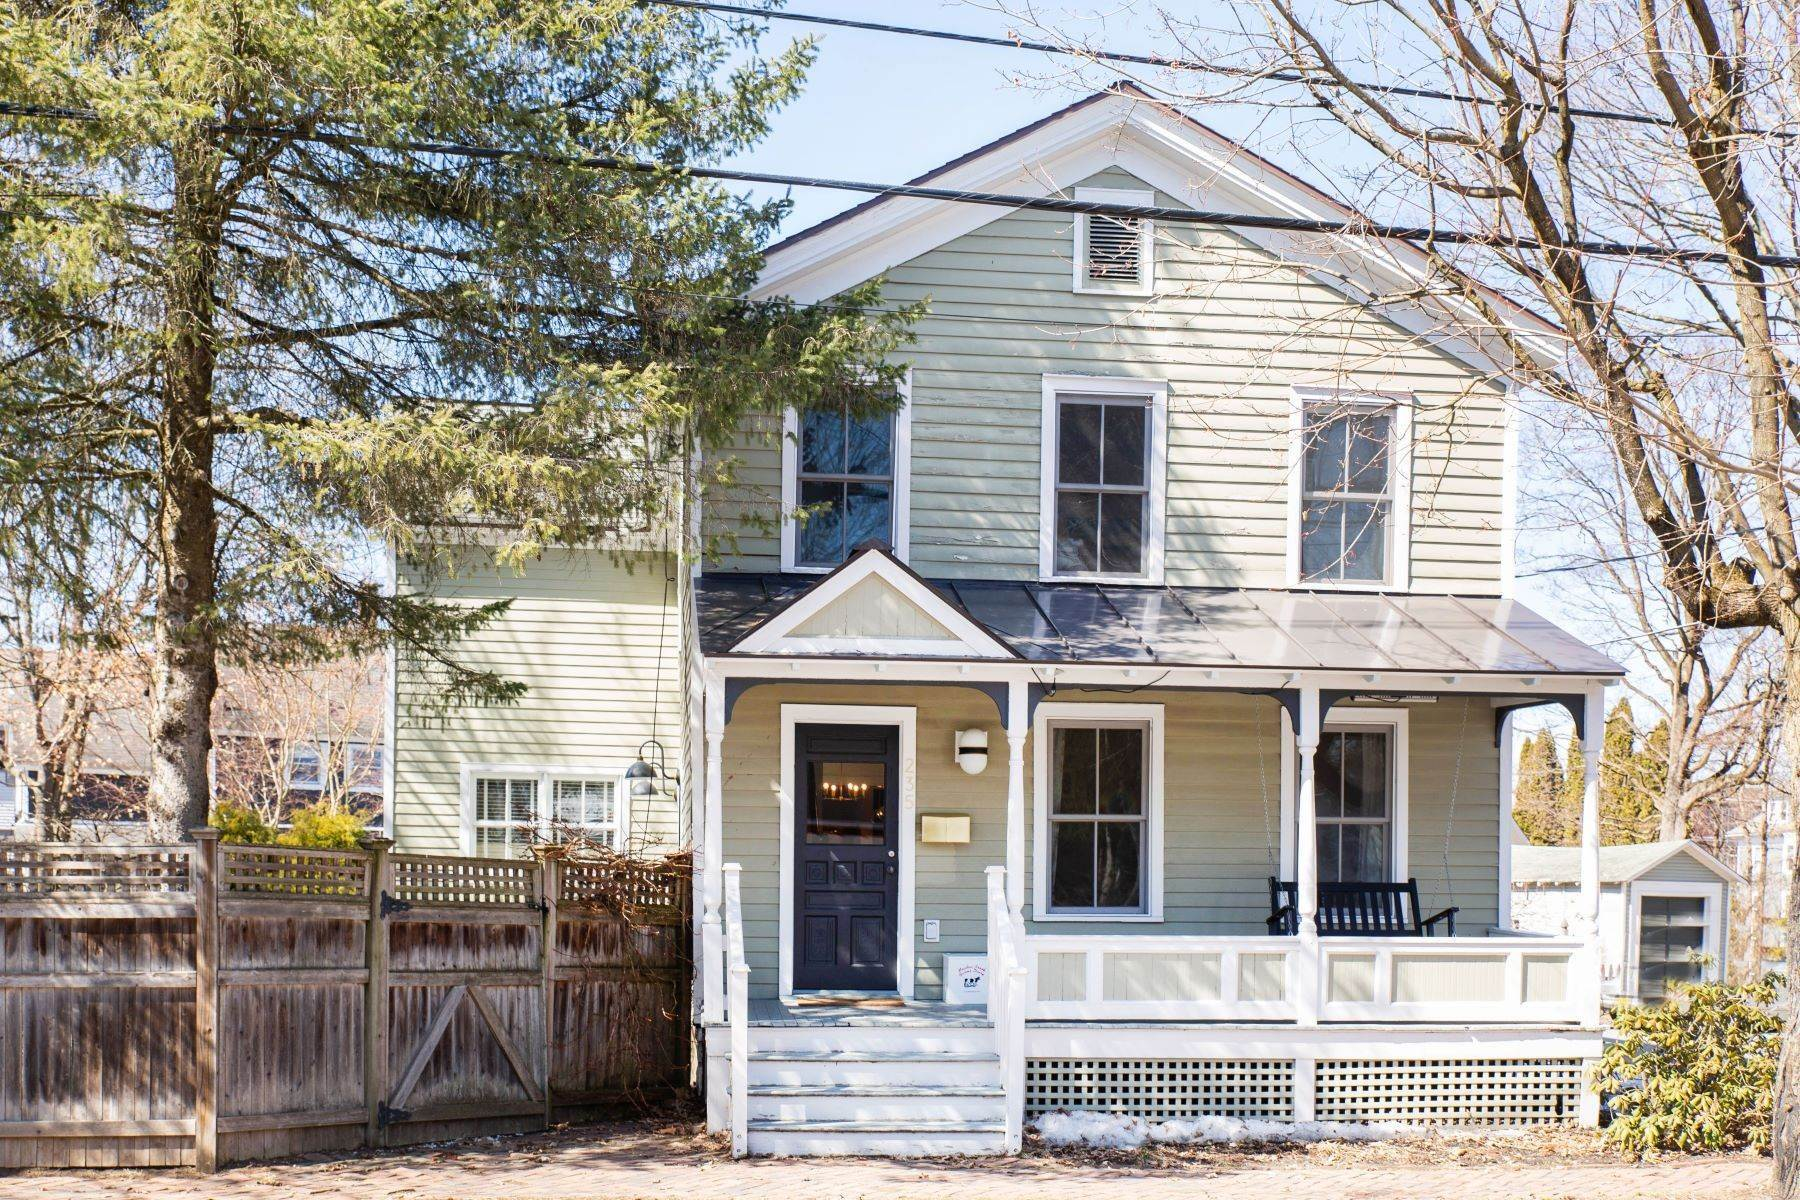 Single Family Homes for Sale at Two Story Home Minutes to Downtown Saratoga Springs 235 Nelson Avenue Saratoga Springs, New York 12866 United States